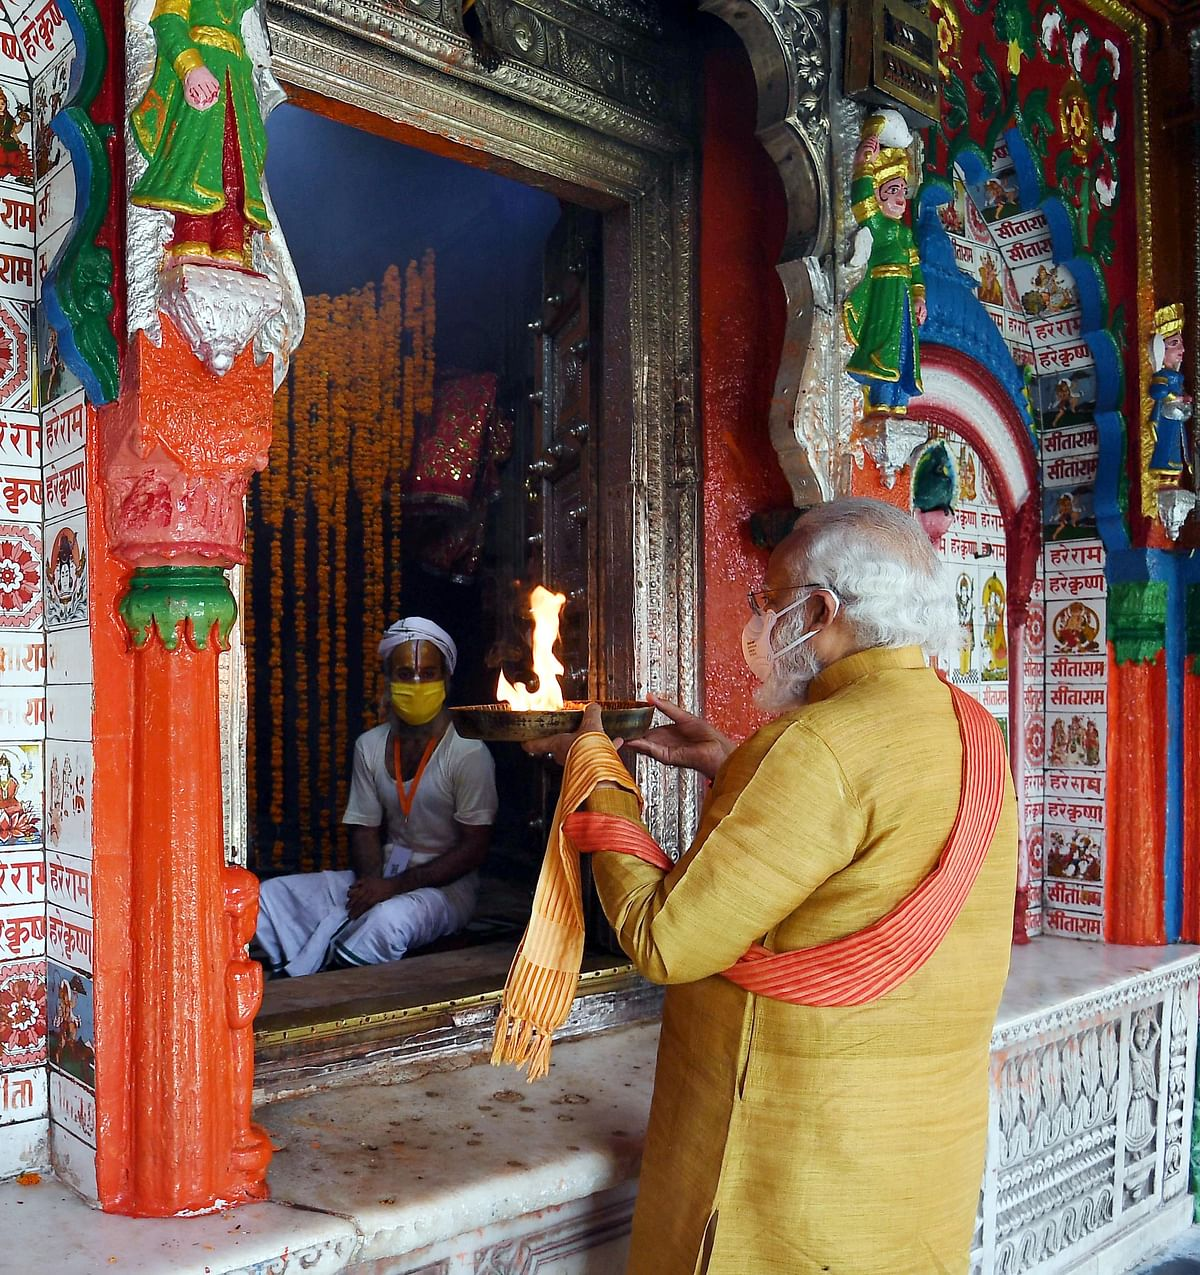 PM Modi at the Hanumangarhi, before the Ram Mandir event.